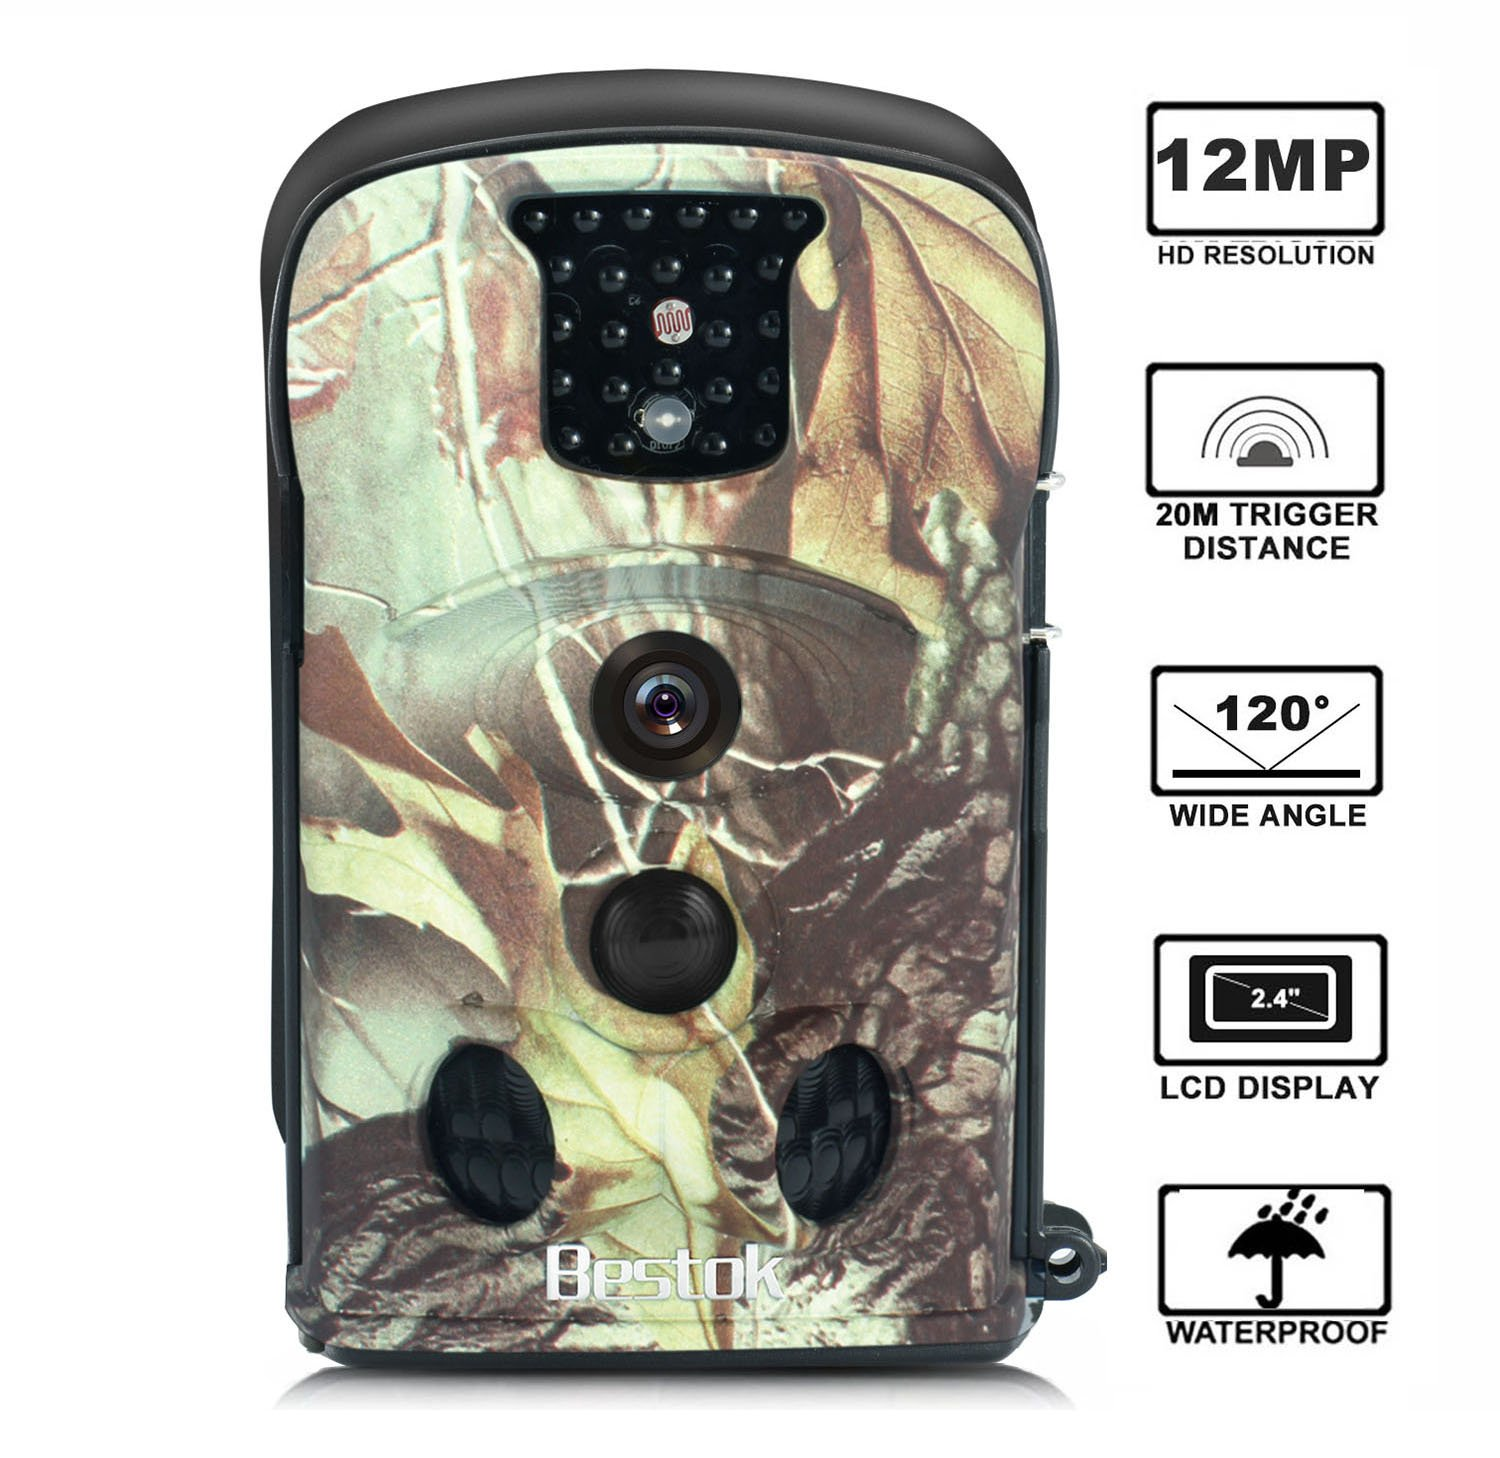 Trail Camera Bestok 12MP 120° Full HD Night Vision up to 65ft/20m, Waterproof IP54 Protected 2.4LCD Screen Wildlife Camera for Security